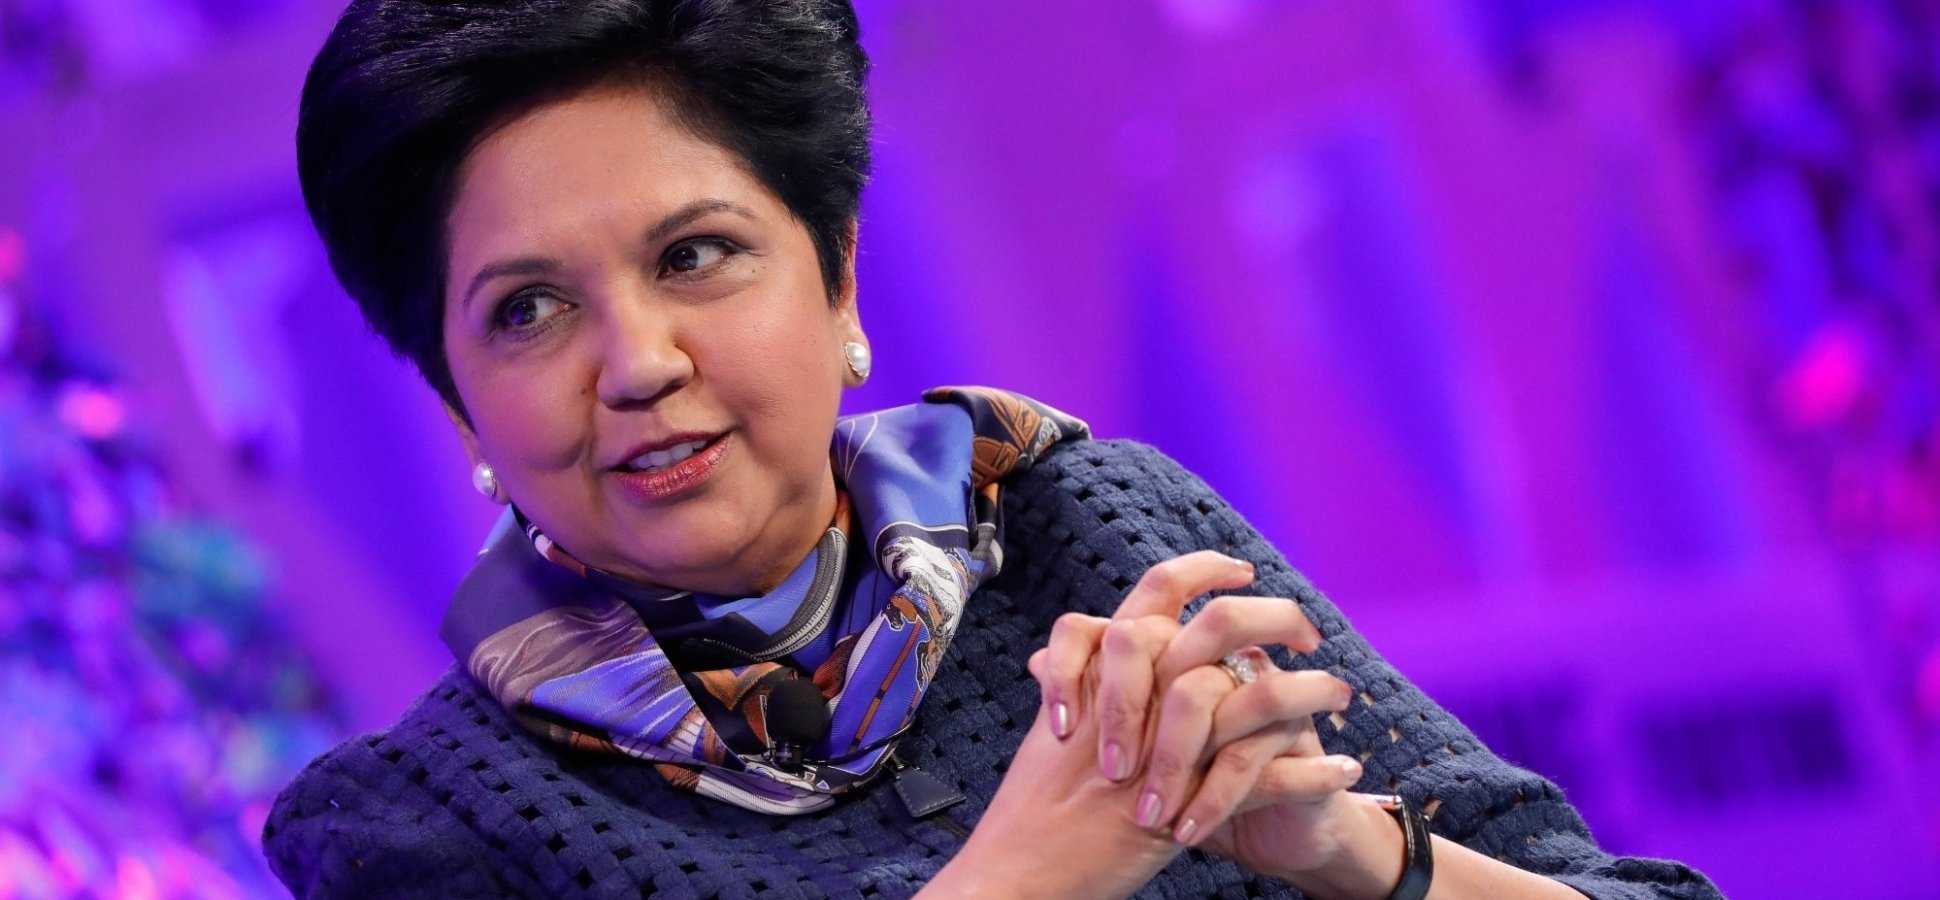 Outgoing PepsiCo CEO Indra Nooyi Has 1 Big Piece of Advice for Today's Young People